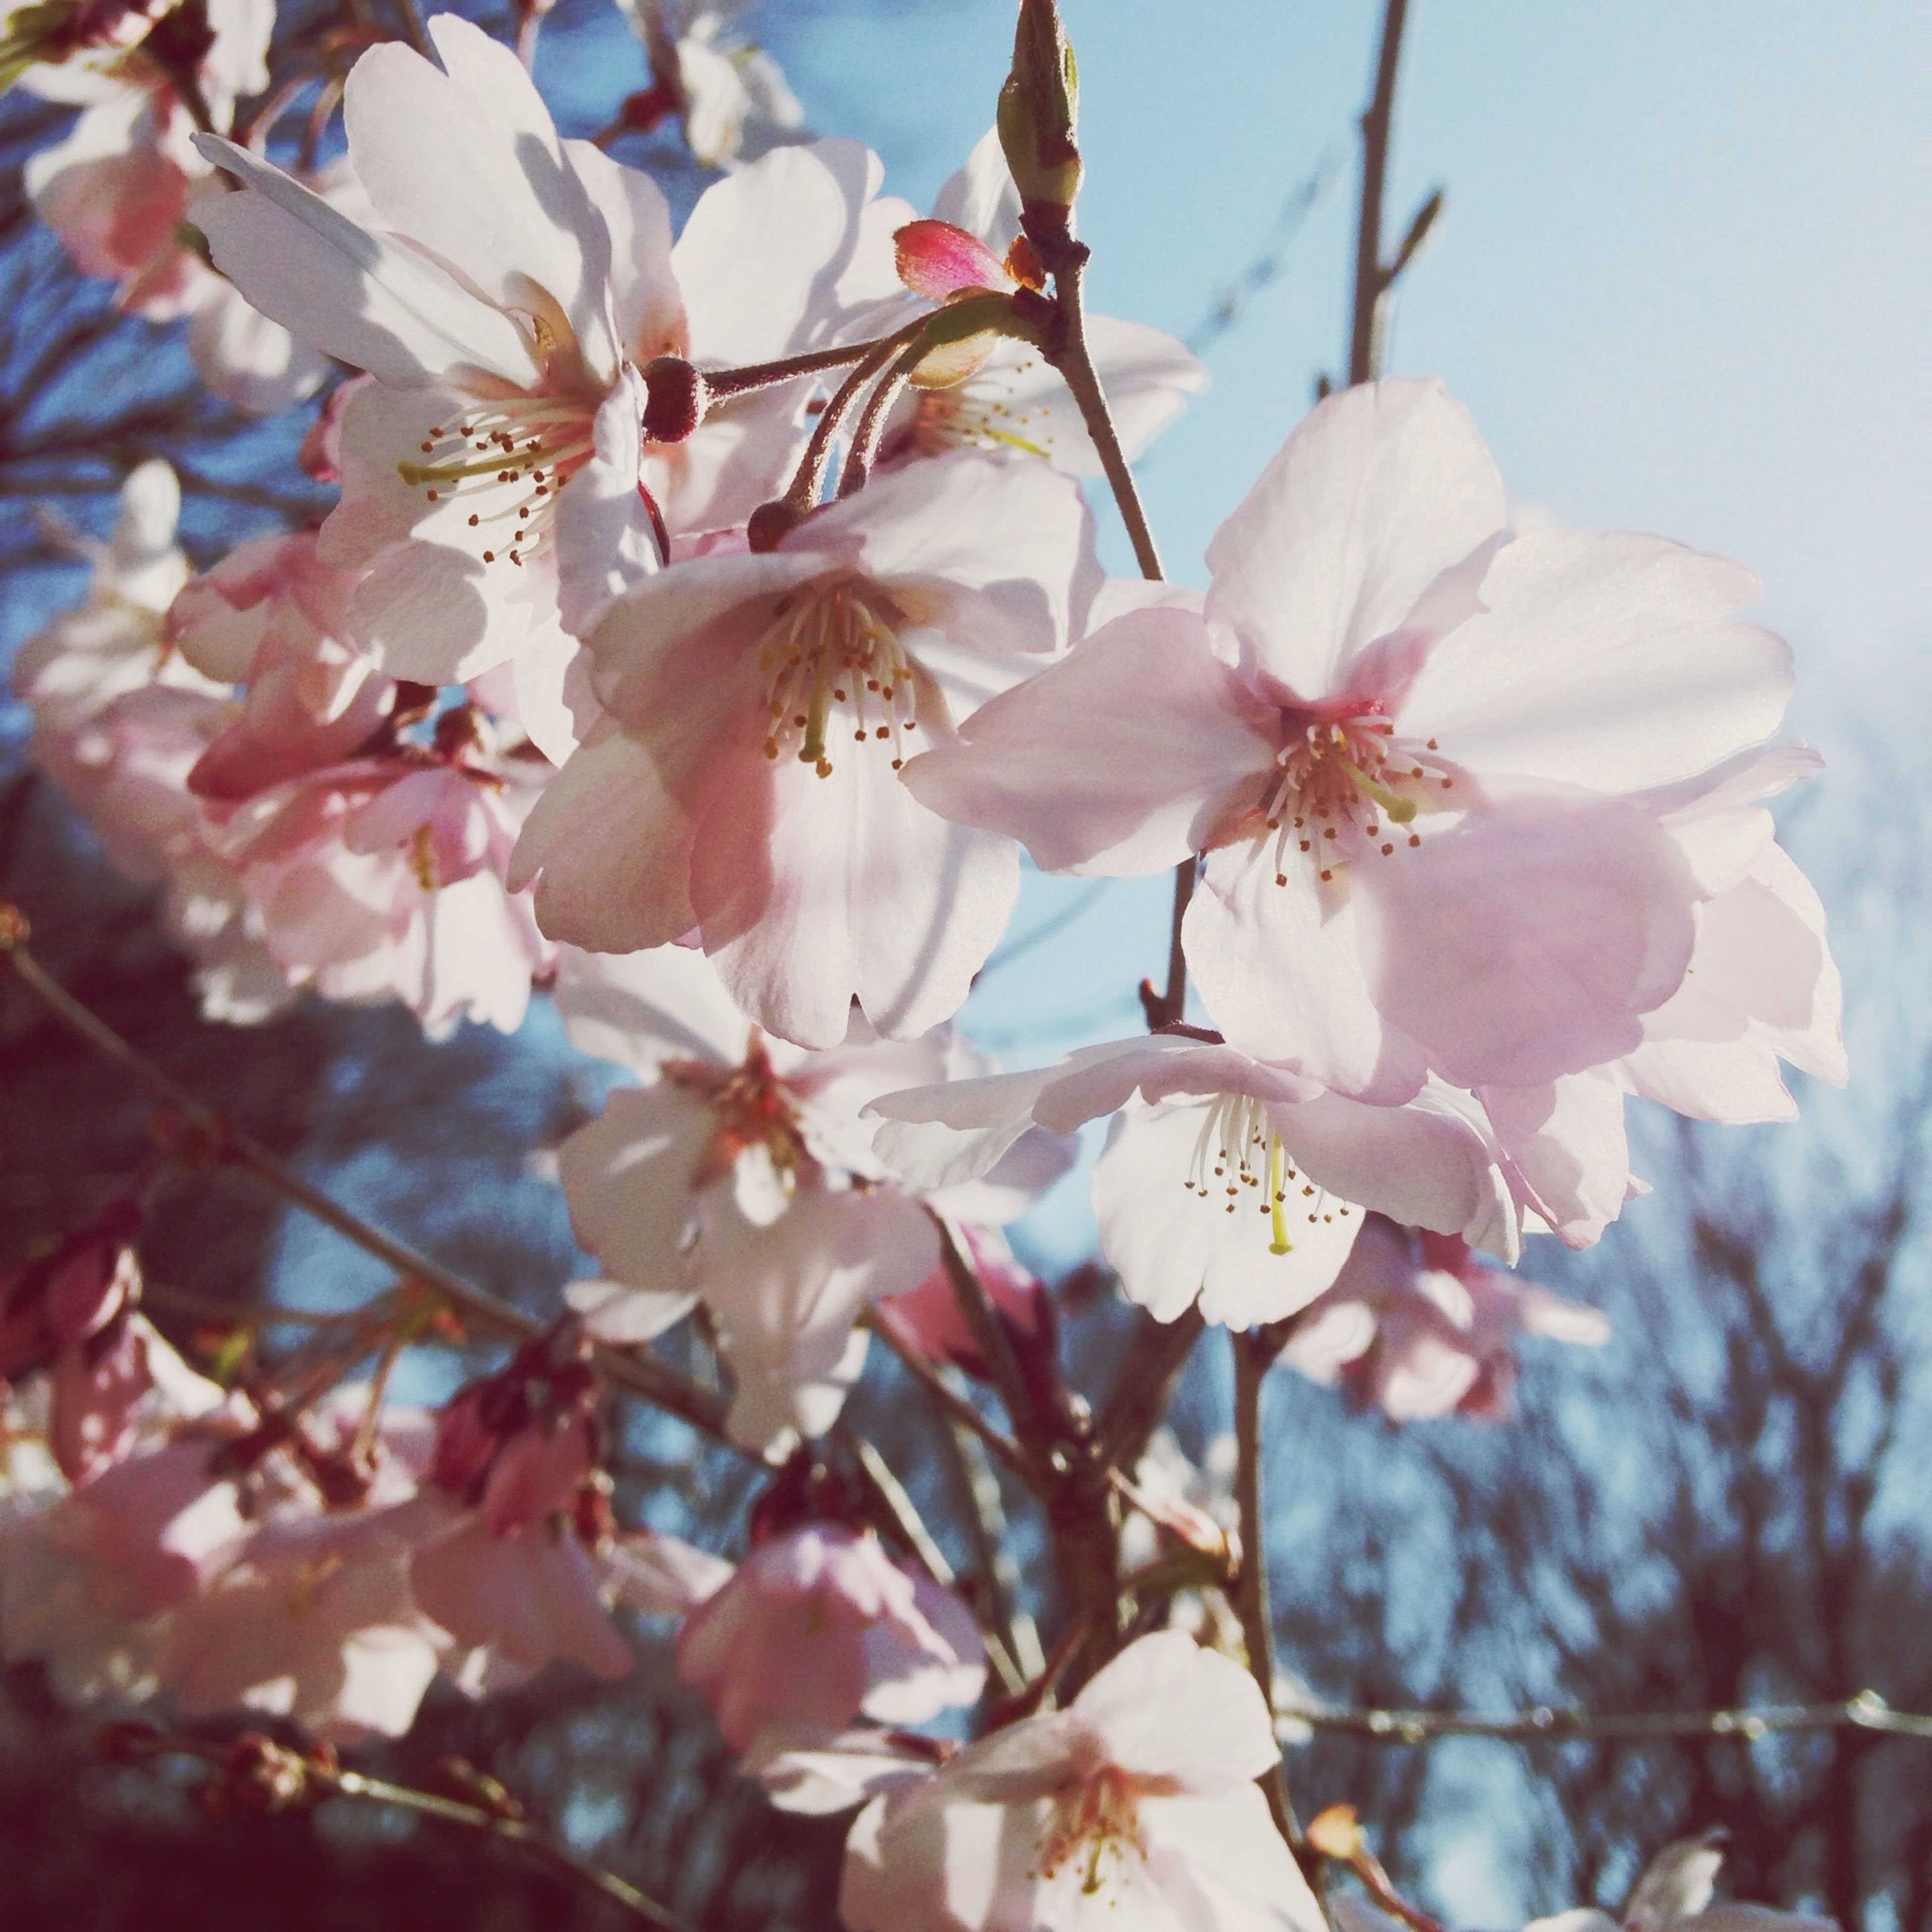 flower, freshness, fragility, growth, branch, cherry blossom, beauty in nature, petal, tree, blossom, cherry tree, nature, low angle view, in bloom, close-up, focus on foreground, blooming, pink color, fruit tree, twig